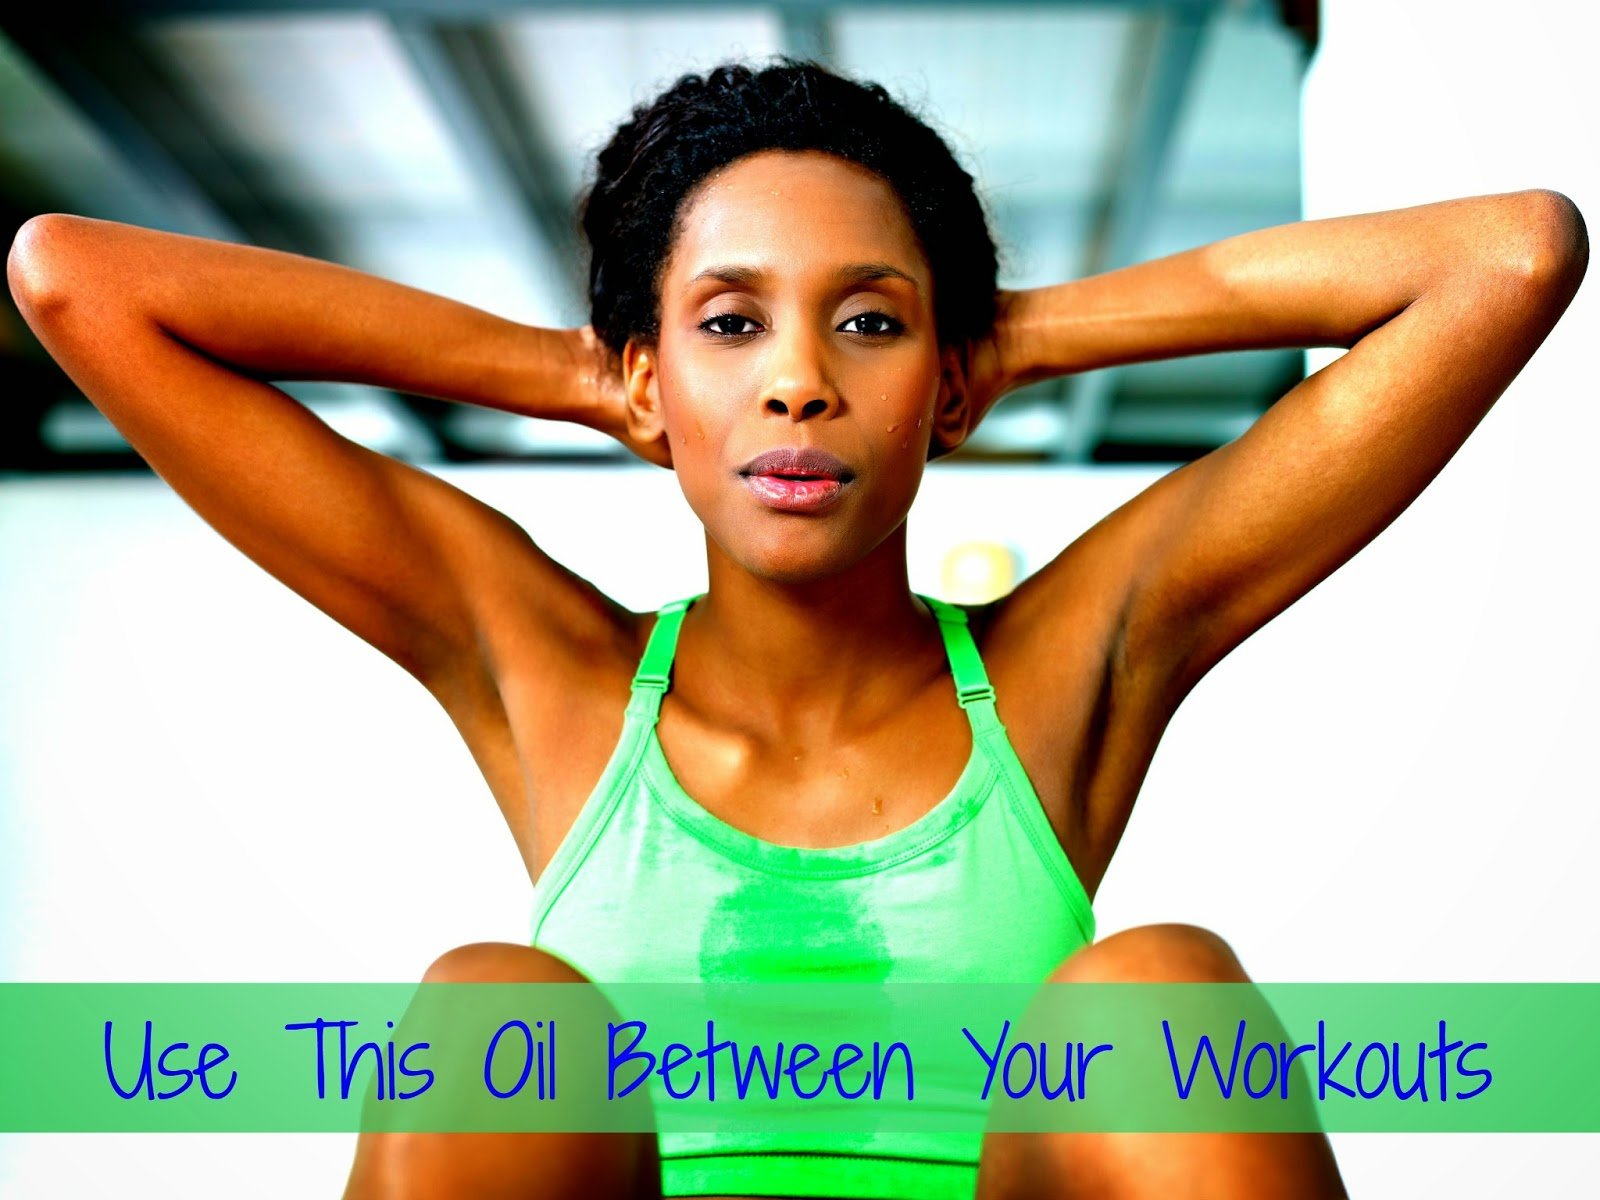 Use This Oil Between Your Workouts